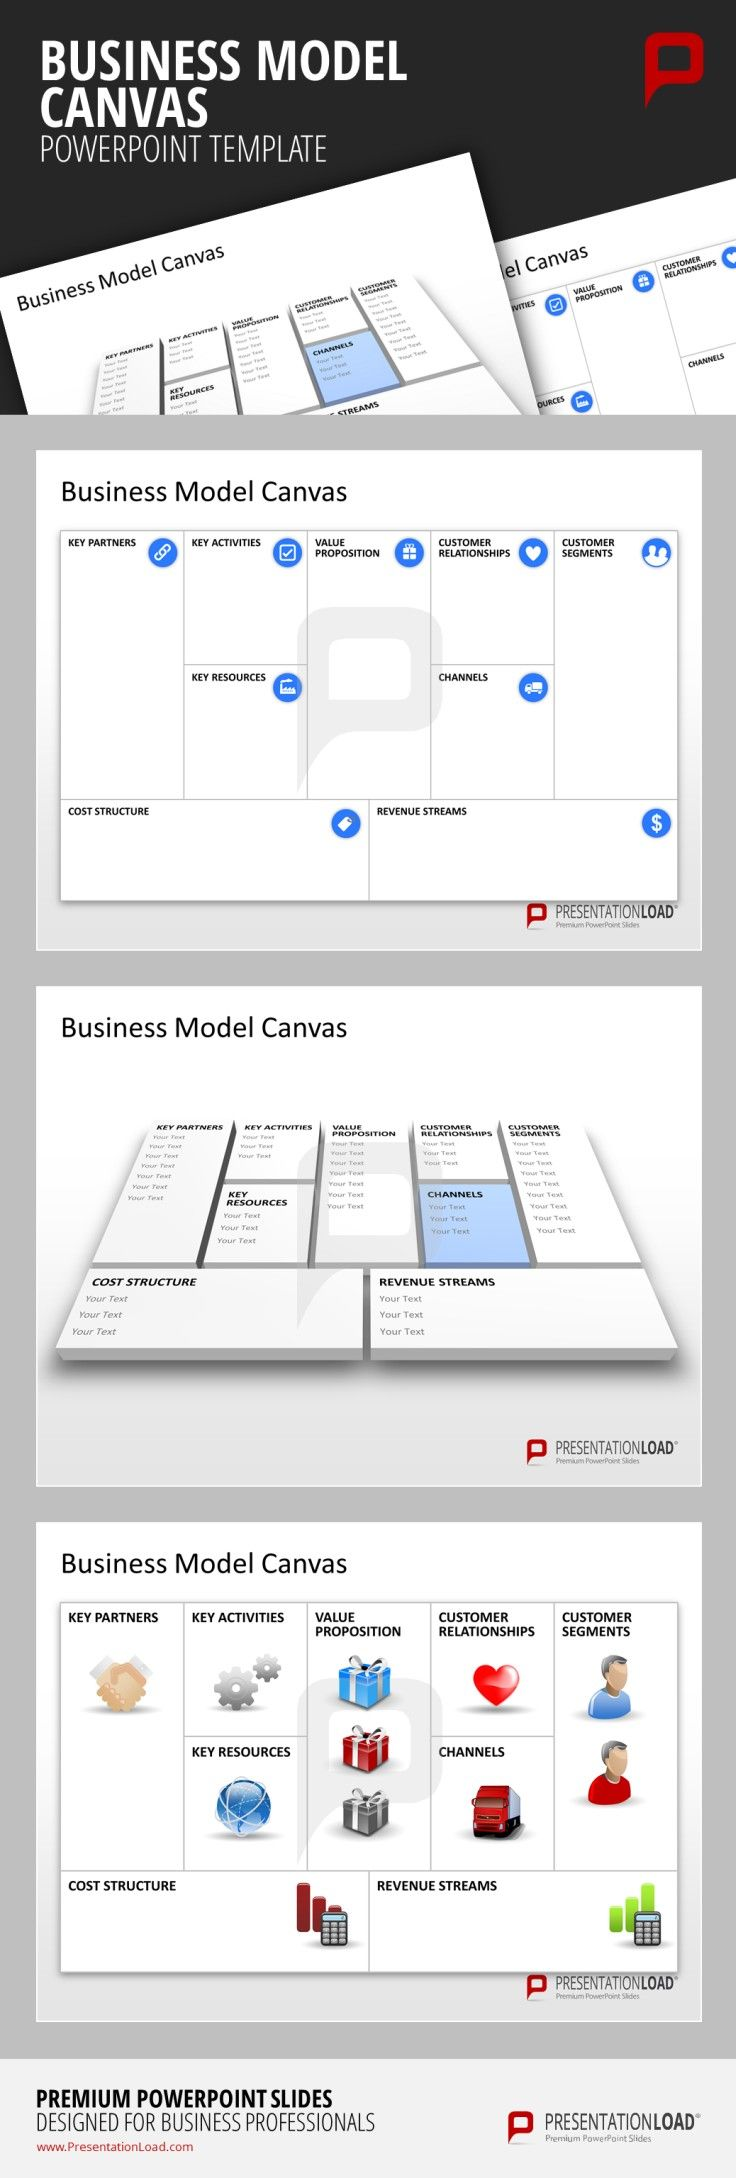 Business model canvas powerpoint template start with your business business model canvas powerpoint template start with your business model ideas today and work through your toneelgroepblik Image collections